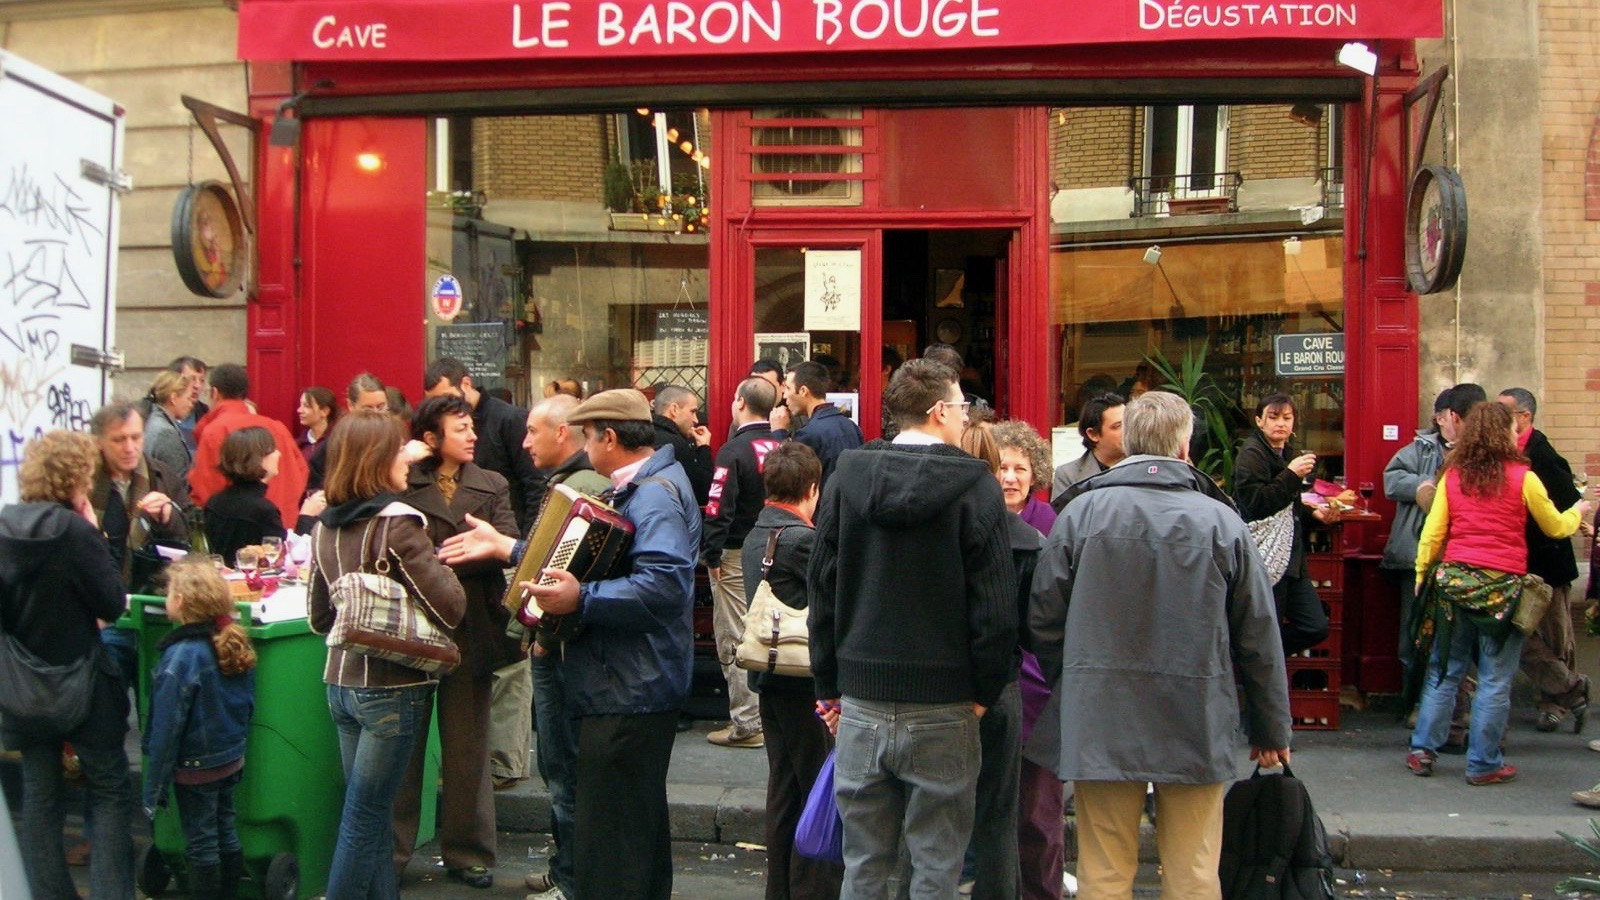 A crowded entrance at Baron Rouge.